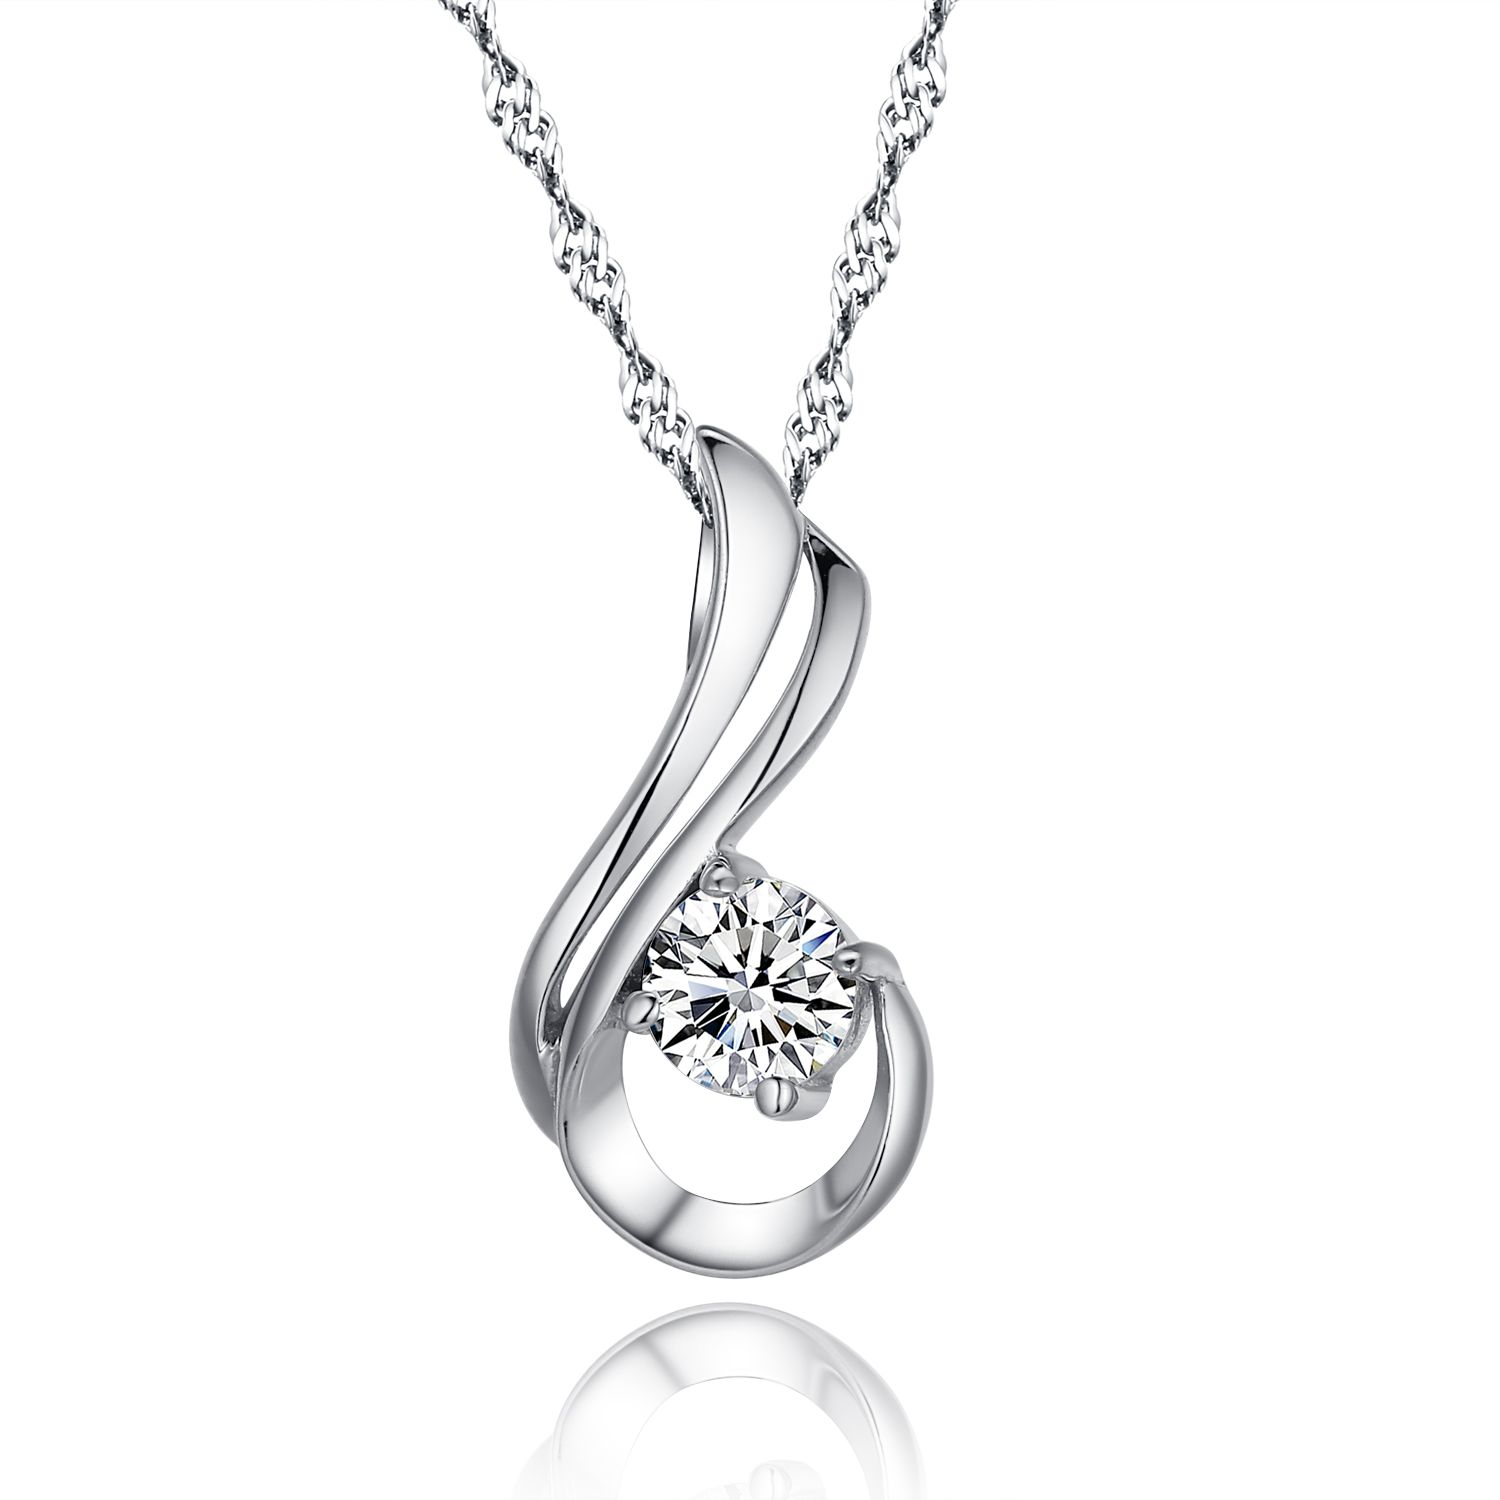 Genuine 100 925 sterling silver pendant necklace paved cubic love at first sight 925 sterling silver paved diamond pendant necklace mozeypictures Images